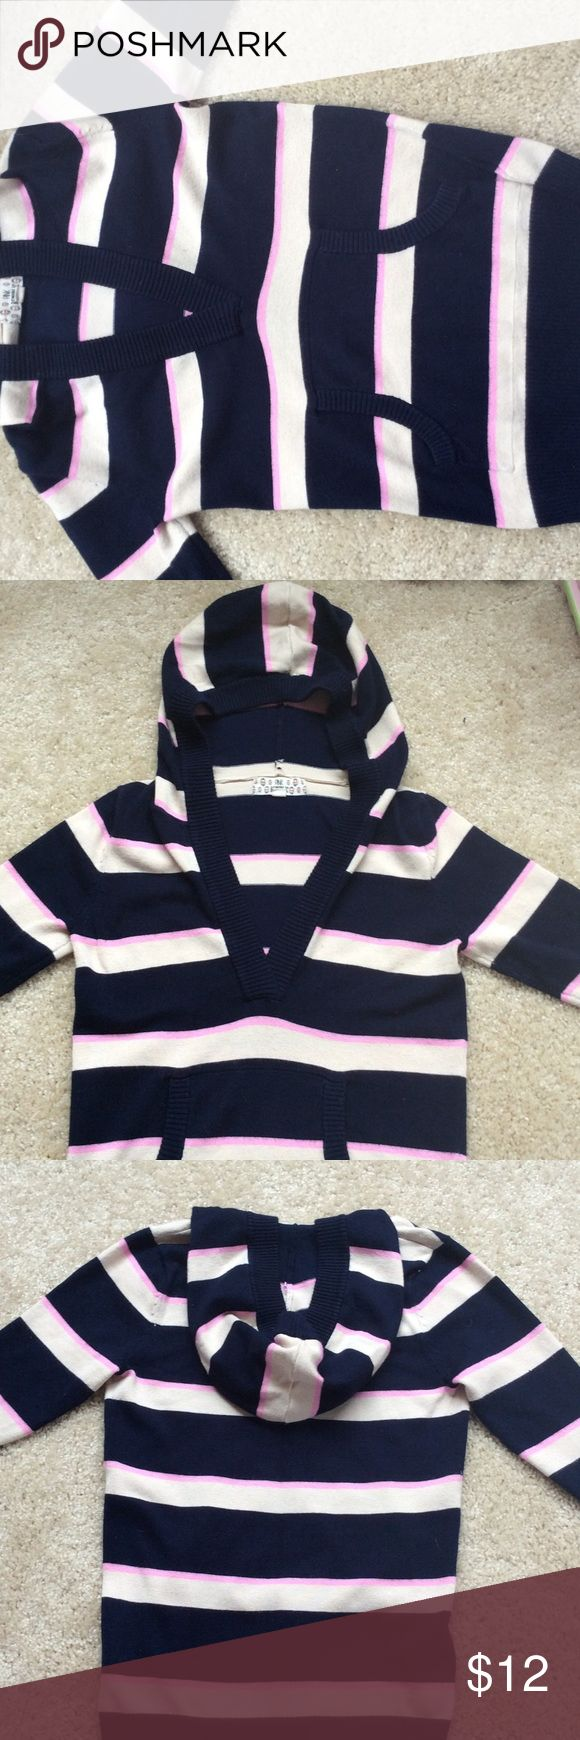 Striped hoodie Navy blue, pink, and cream color striped hoodie. Pink Republic Shirts & Tops Sweatshirts & Hoodies